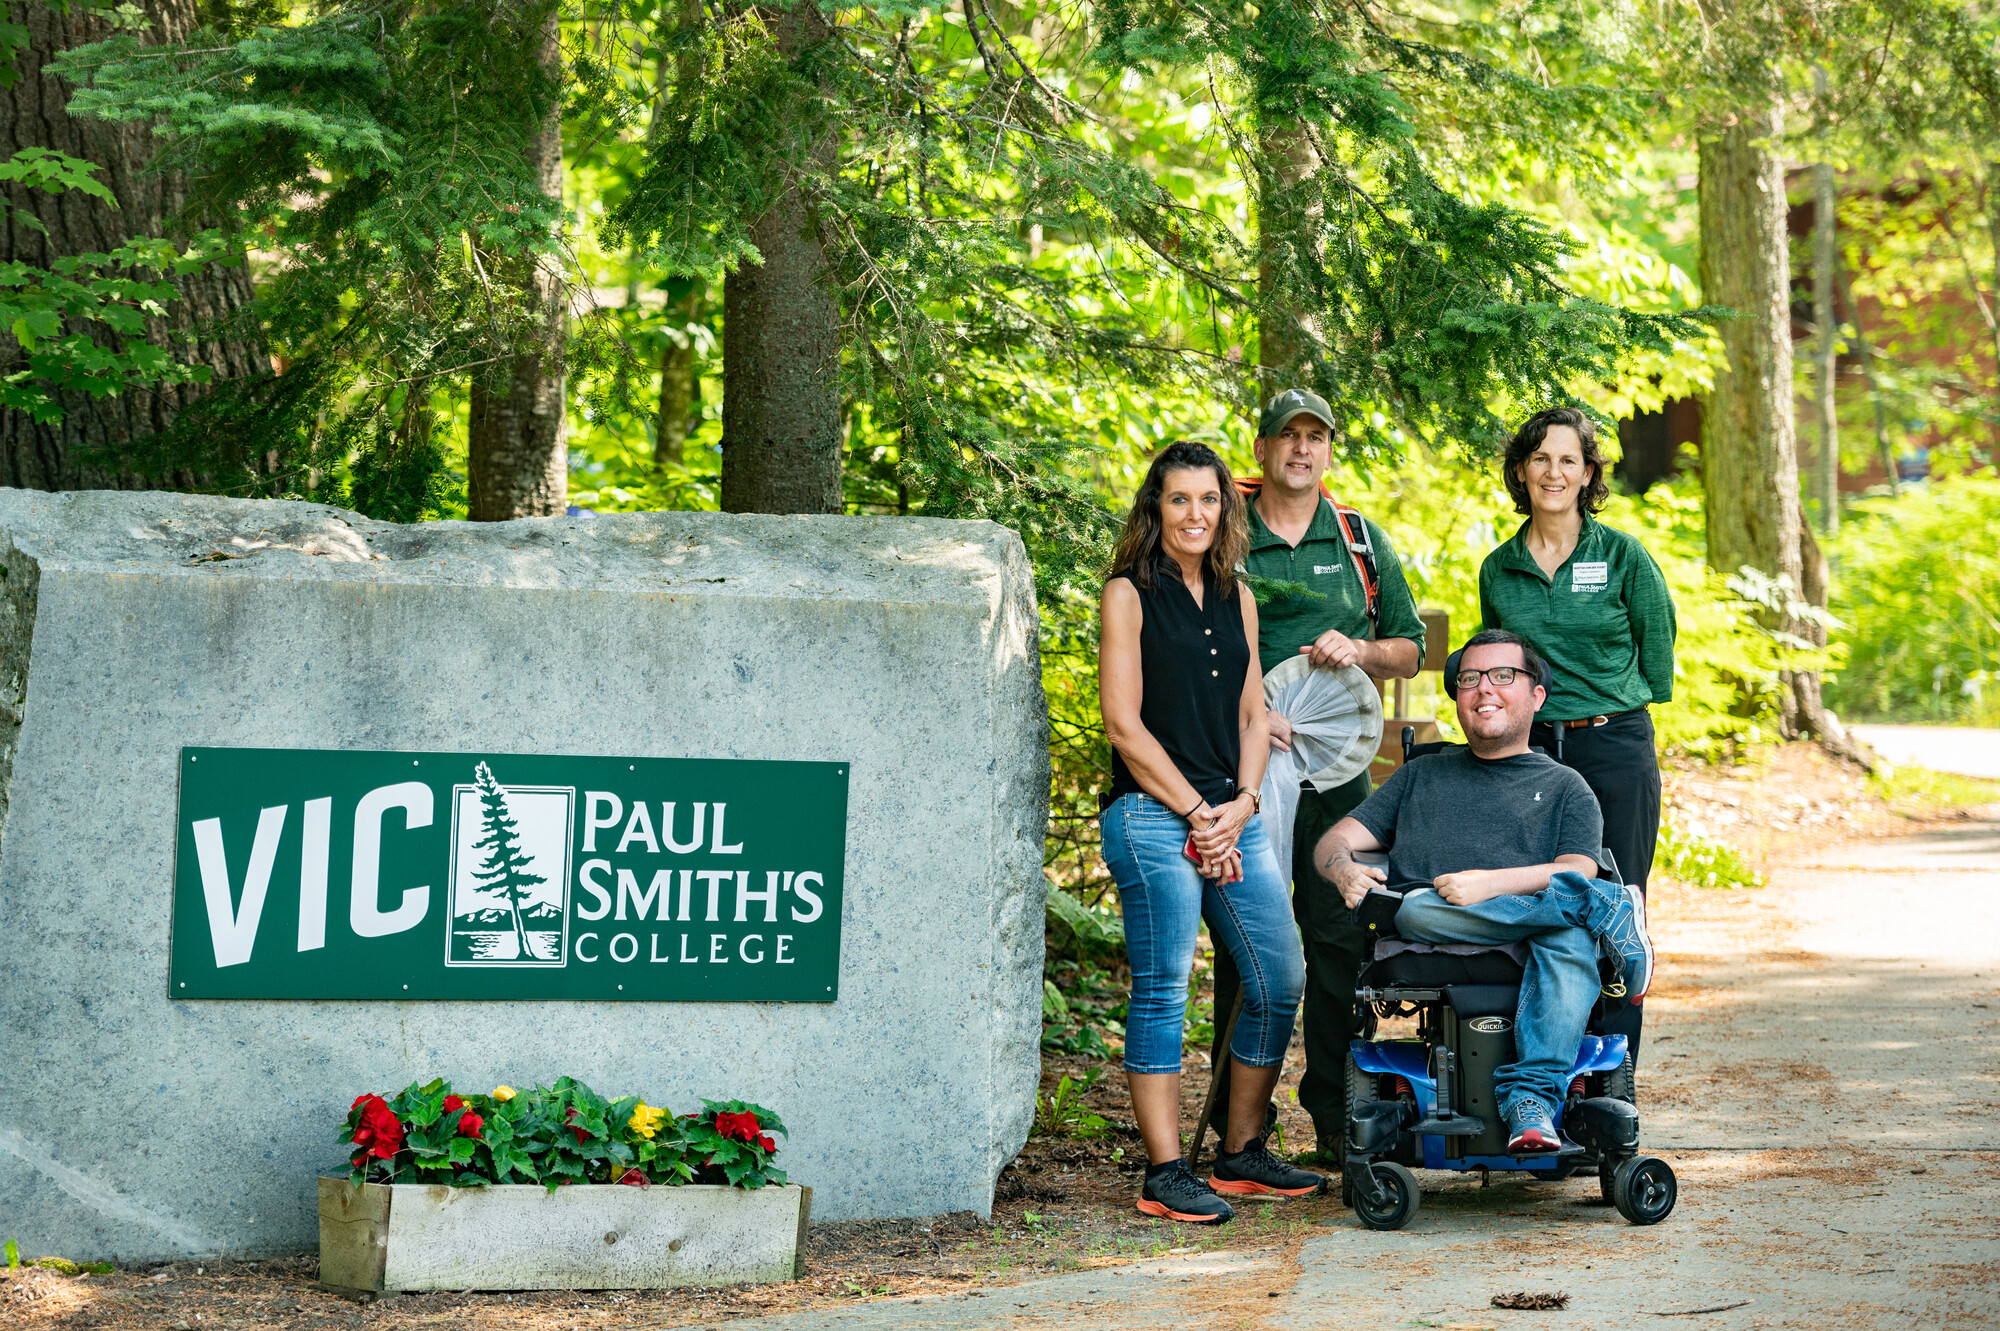 Travel Writer Corey Lee from Curb Free with Cory Lee poses with his mother and two staff members from Paul Smith's College VIC next to the entrance sign on a beautiful summer day..